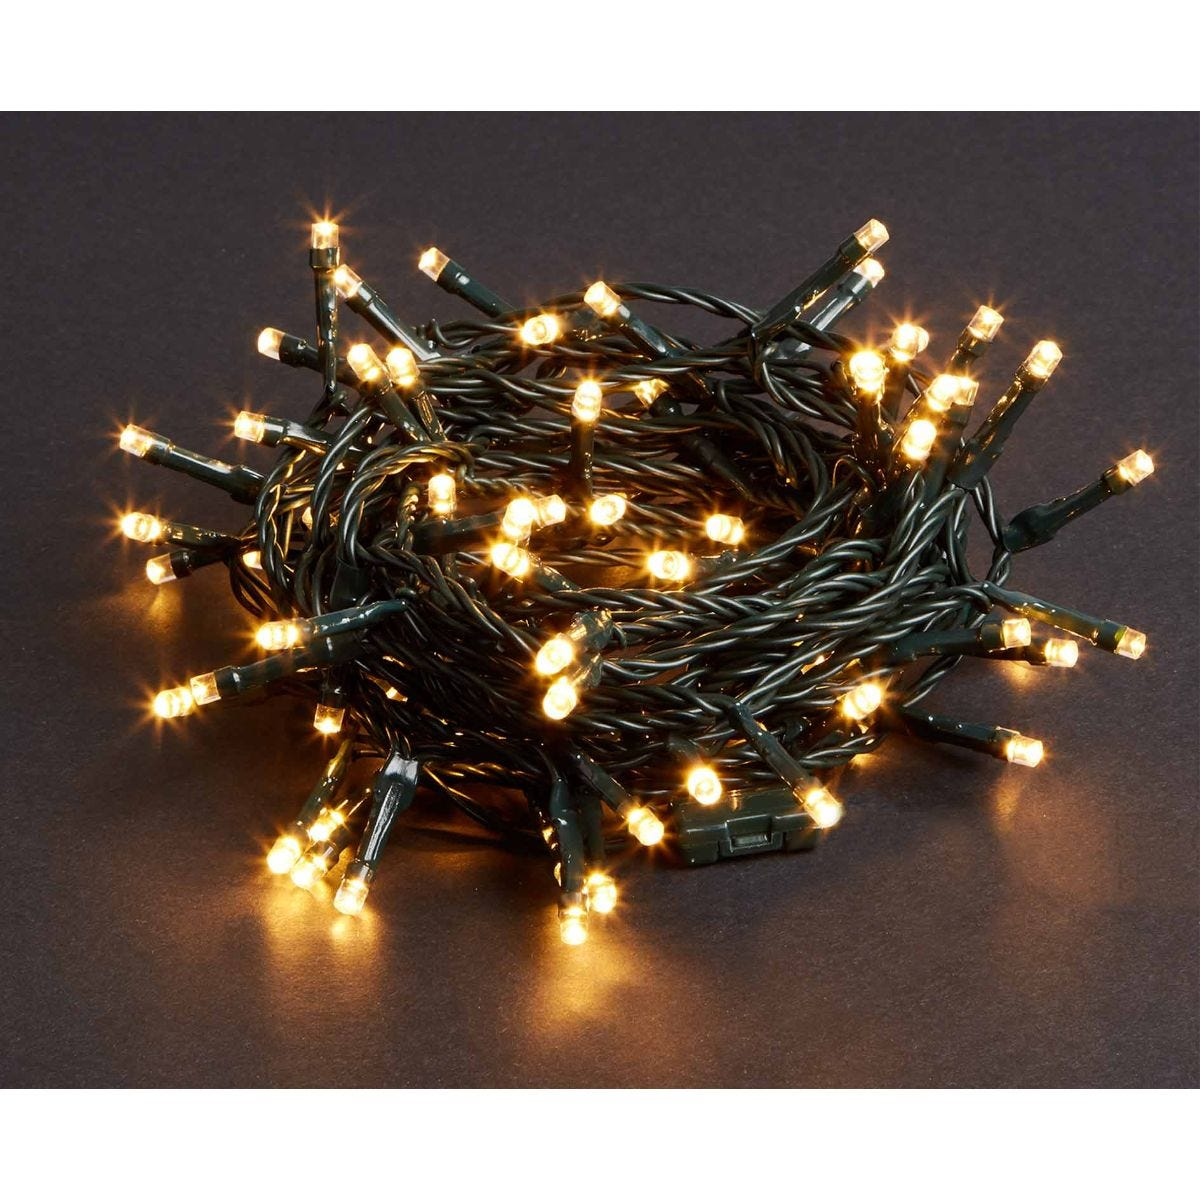 Image of 100 LED String Lights Mains Operated Warm White, White